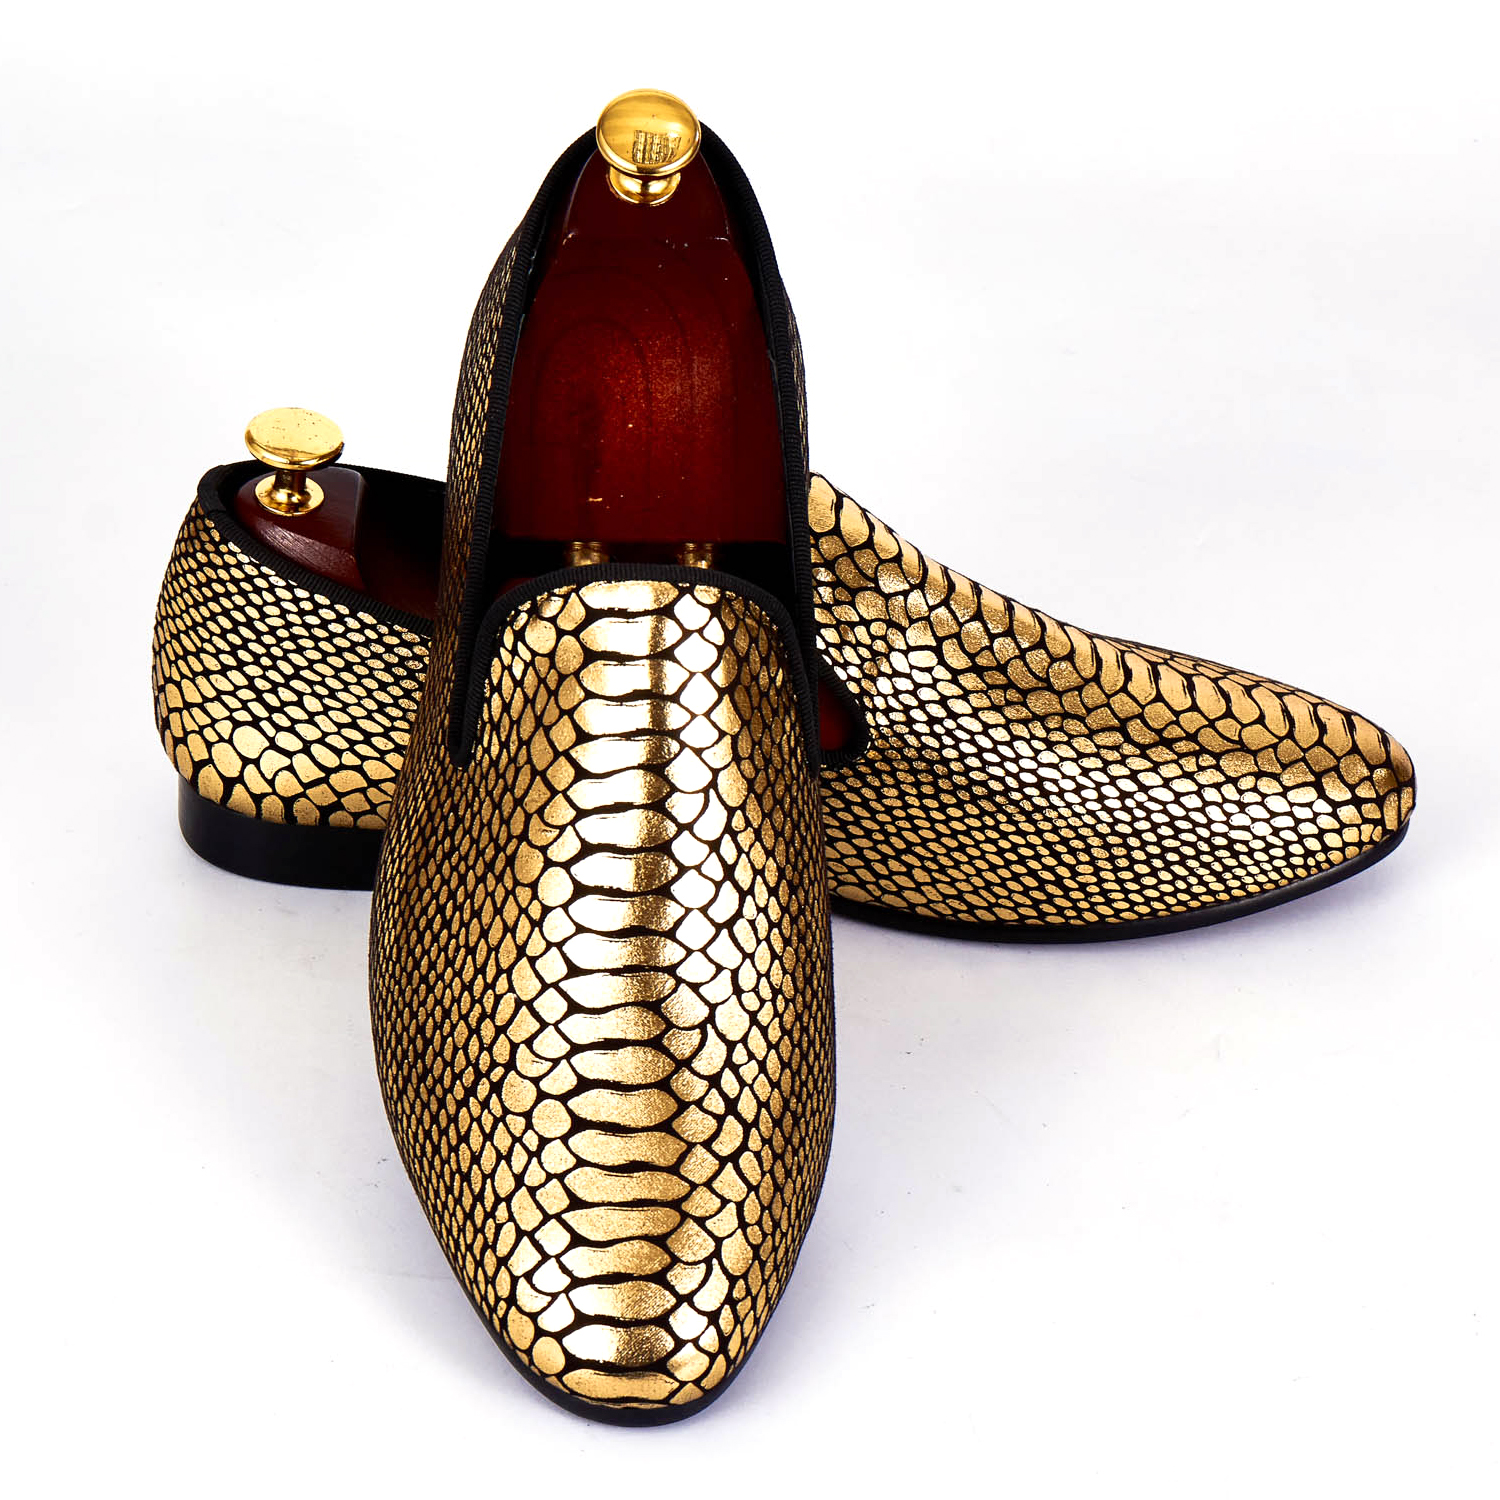 Harpelunde Men Formal Shoes Gold Snake Skin Paisley Wedding Shoes Fashion Designer Loafers Size 7-14